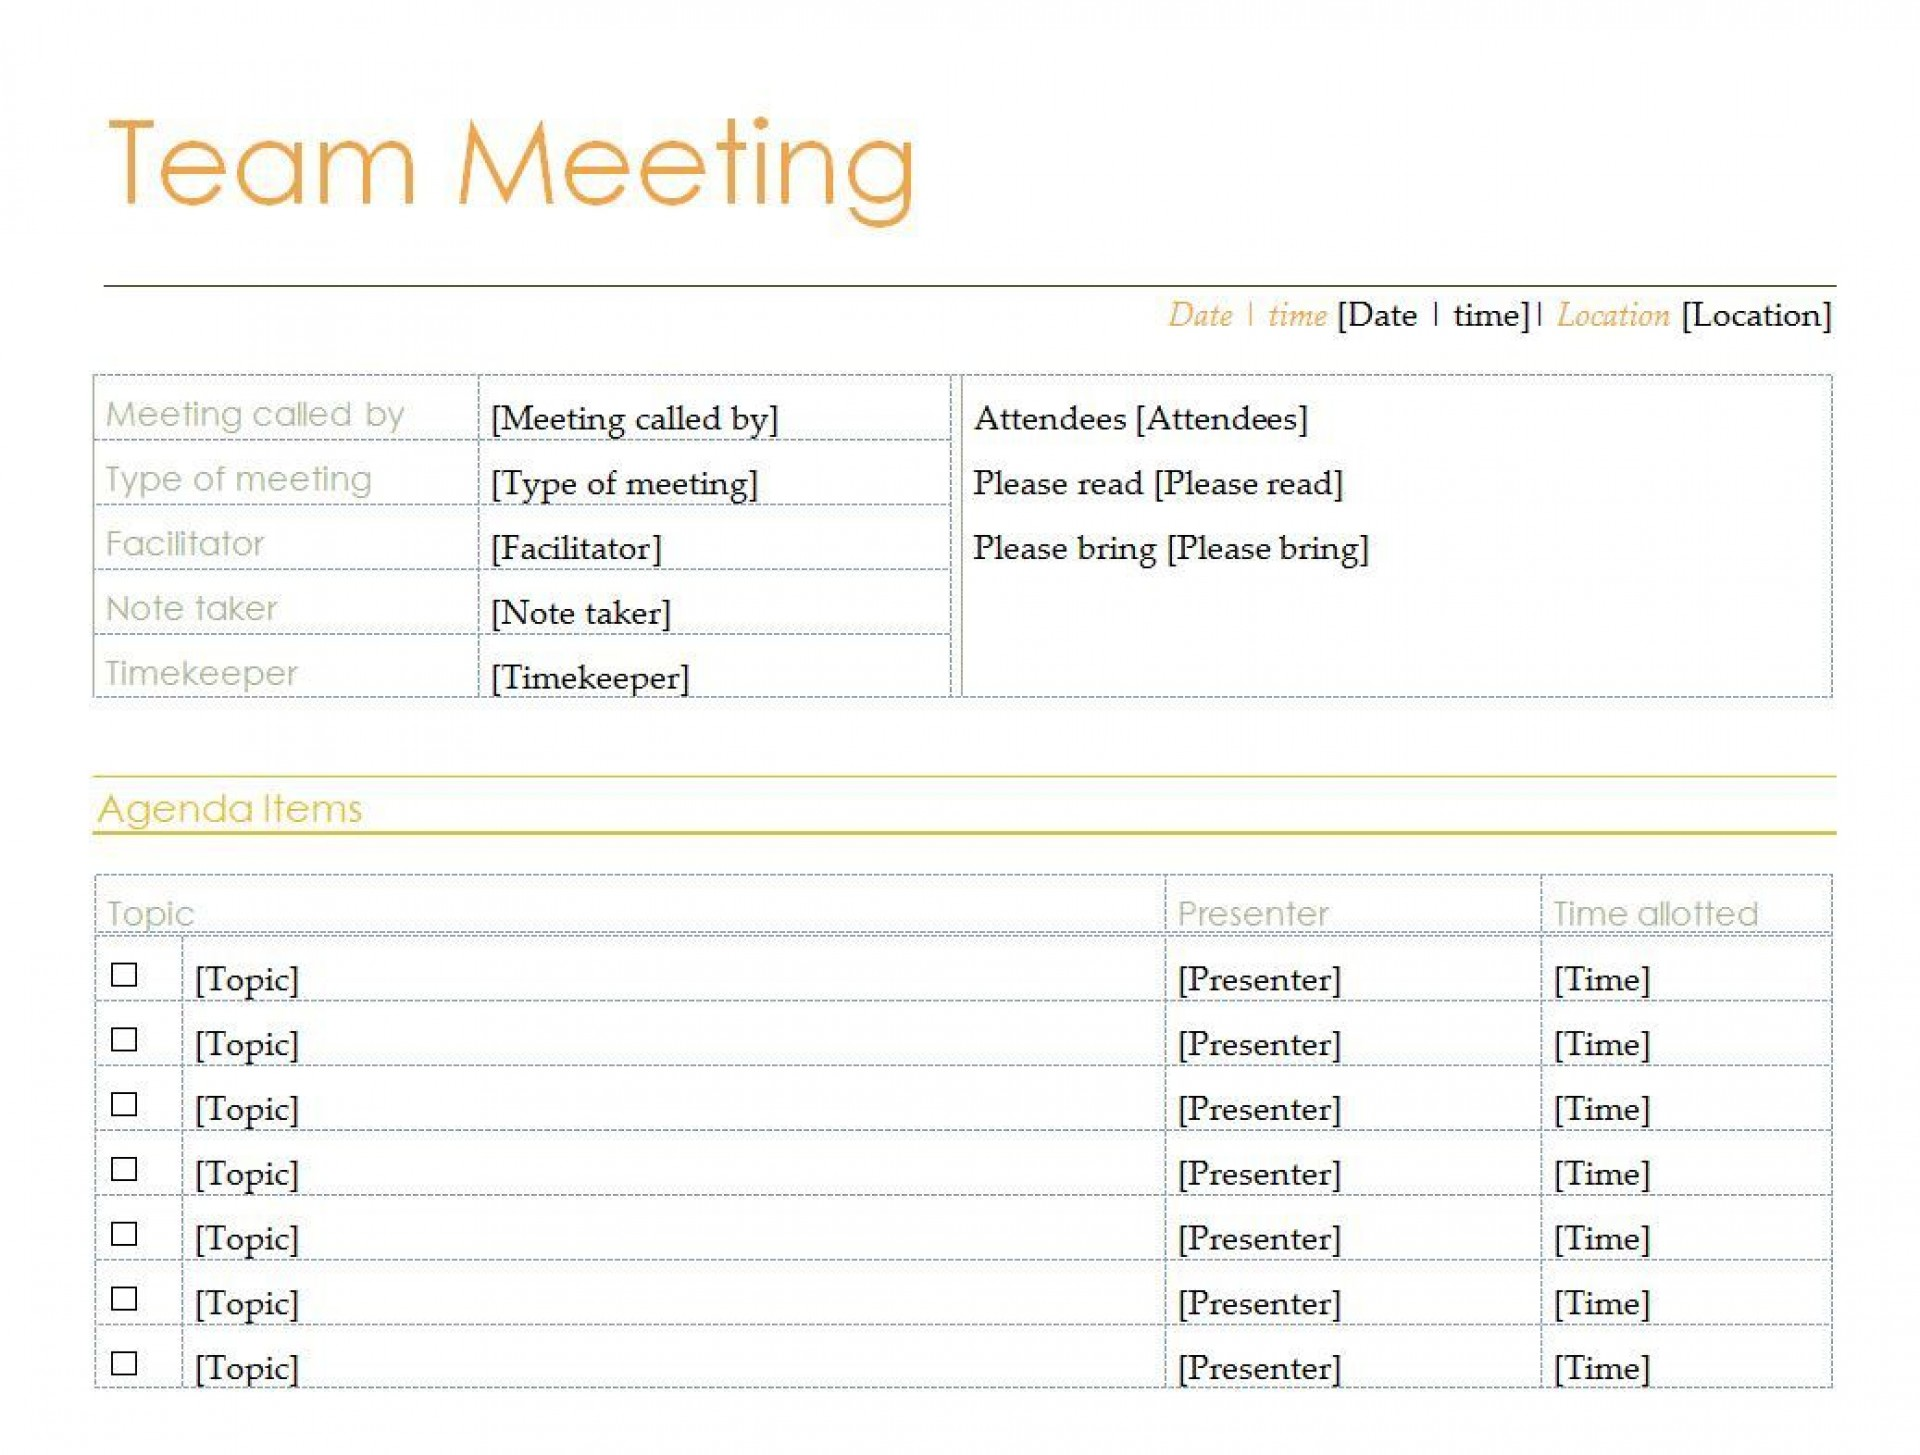 008 Excellent Team Meeting Agenda Template High Def  Word Doc1920